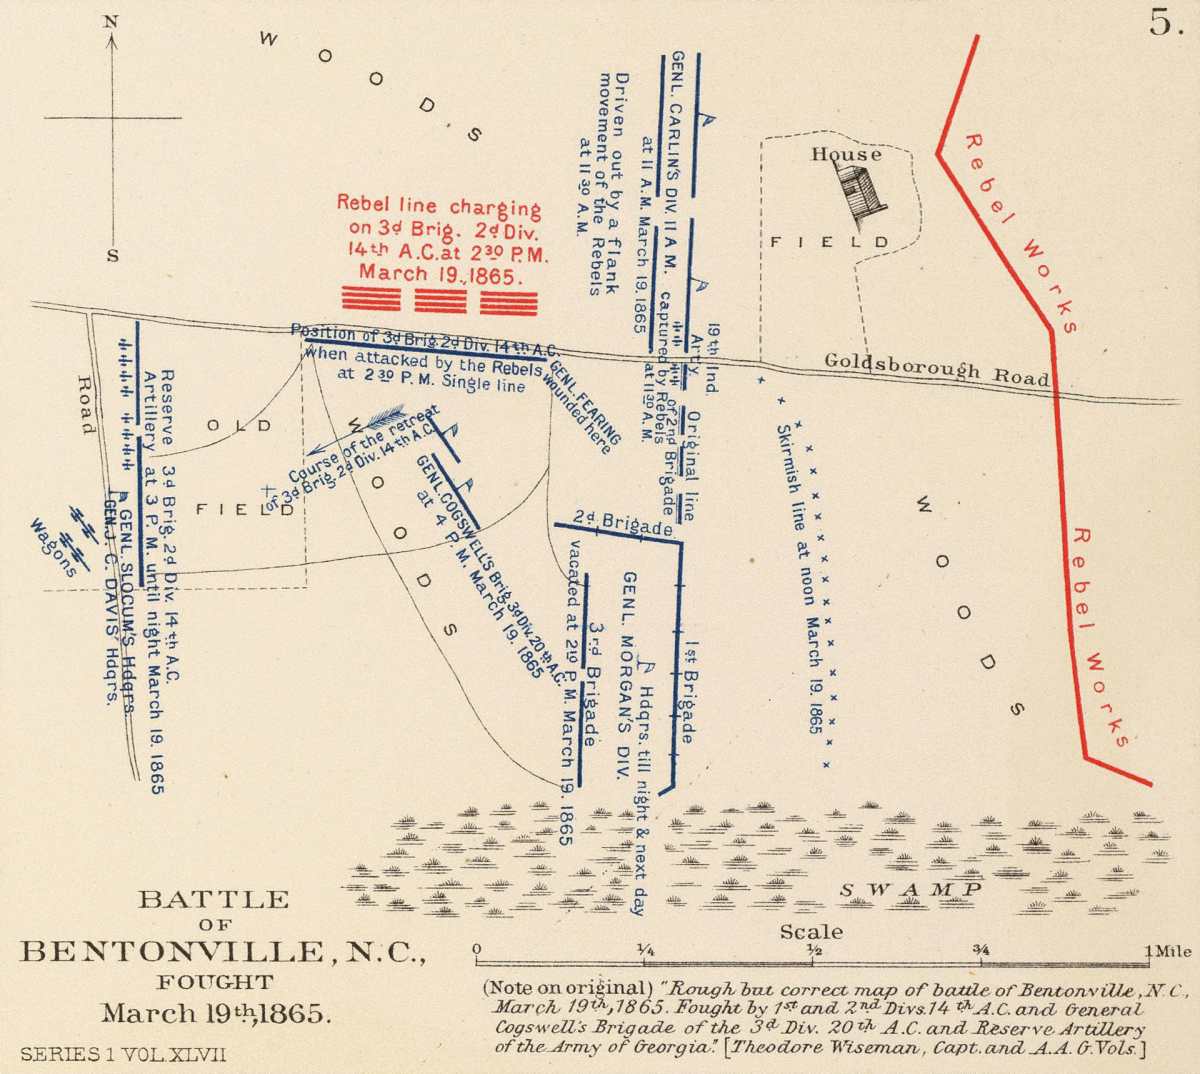 Battle of Bentonville, N.C., fought March 19th, 1865. ~  Author: United States. War Department  ~  Date: 1895